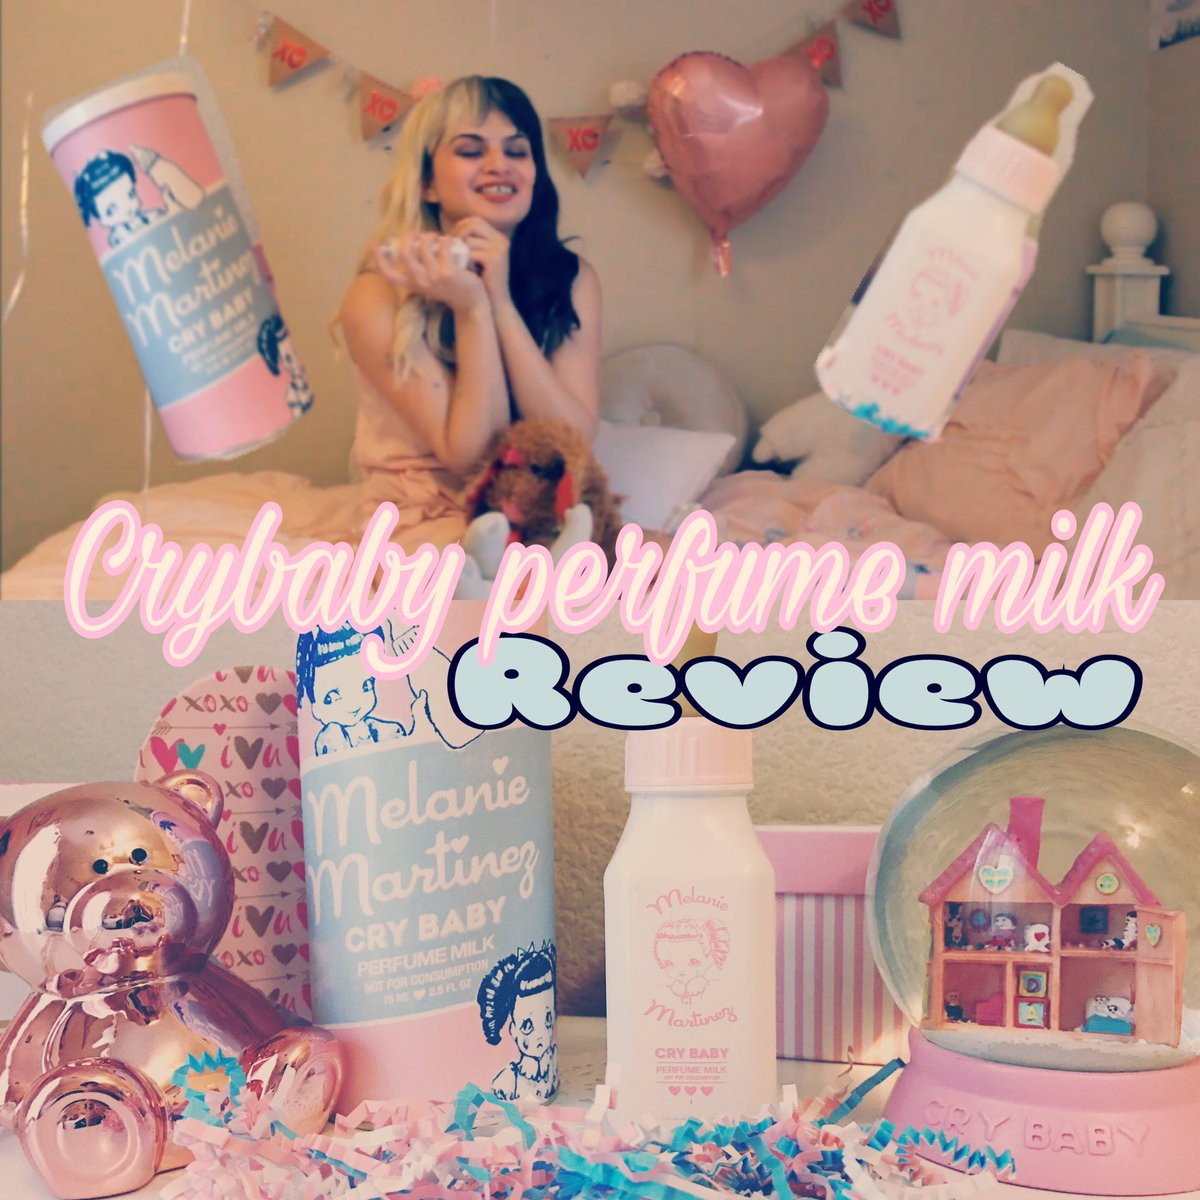 Melanie Martinez cry baby perfume milk review. Now up! #crybabyperfumemilk  #pastel  #crybaby #review   youtube  https:// youtu.be/a__cj7Zx8q0  &nbsp;  <br>http://pic.twitter.com/4otnnk6AAy